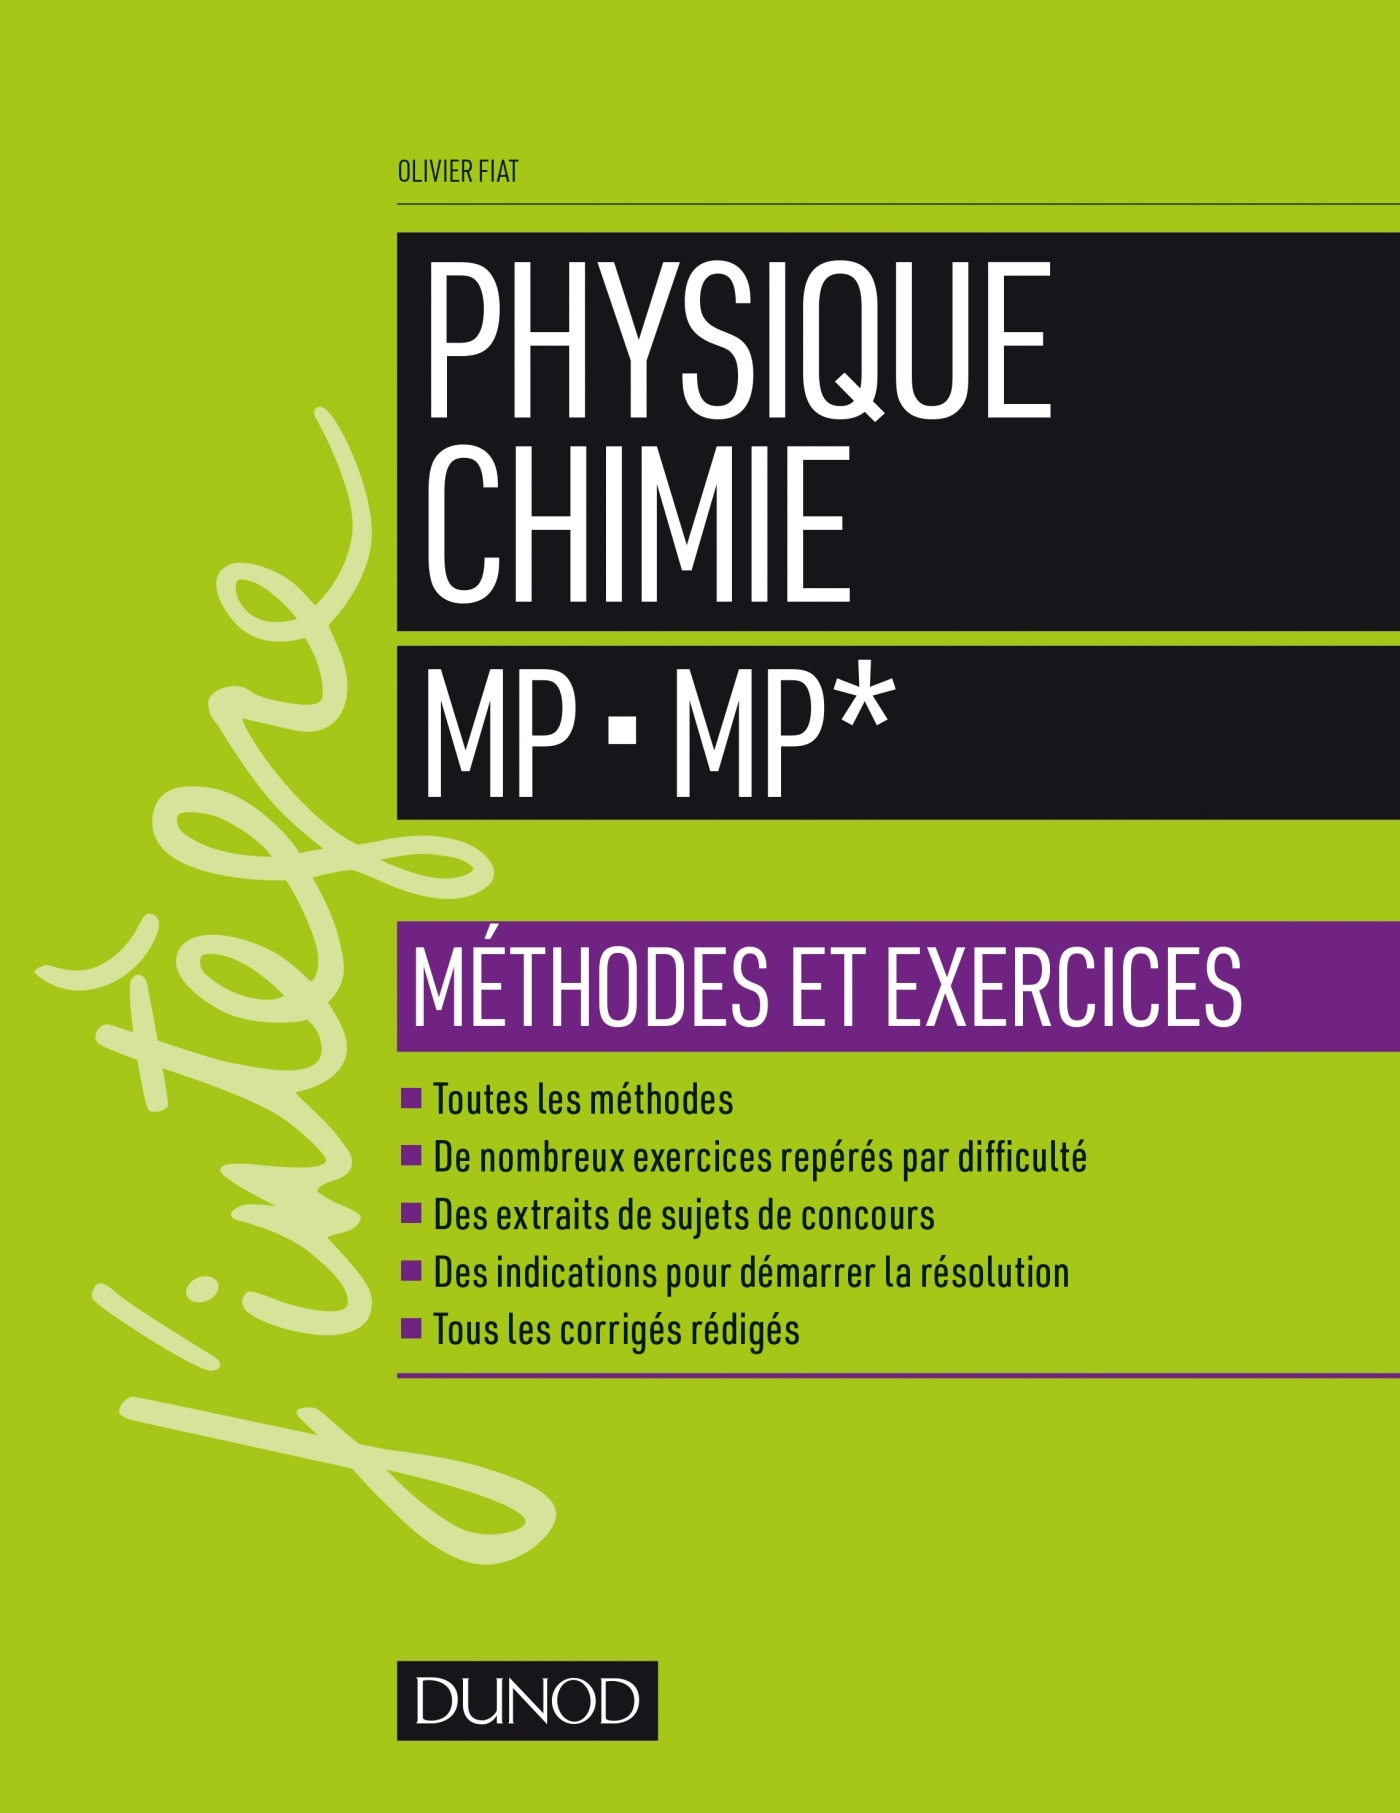 PHYSIQUE-CHIMIE MP - MP* - METHODES ET EXERCICES